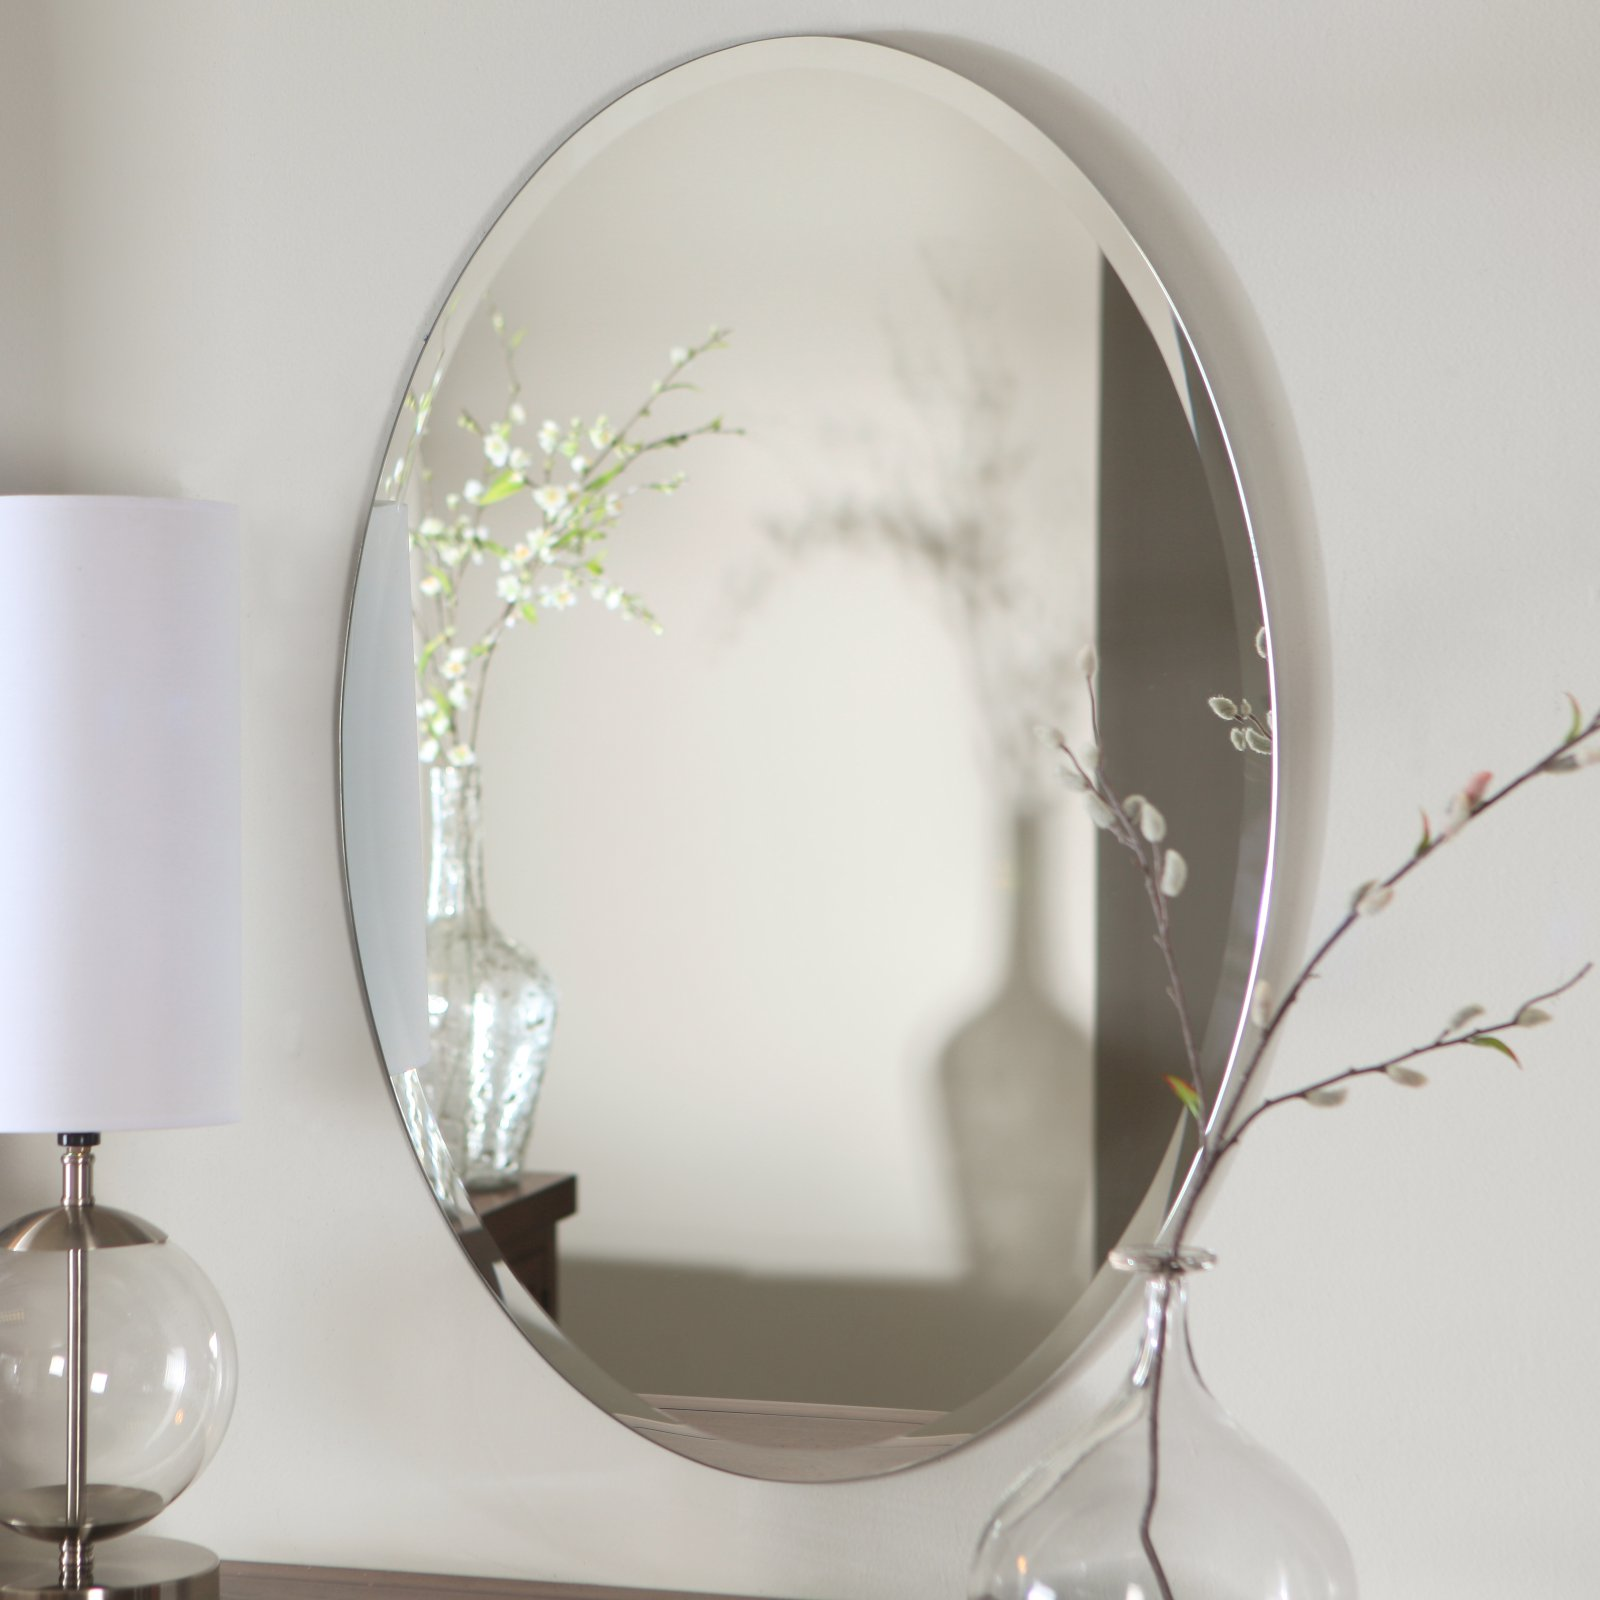 Décor Wonderland Hiltonia Oval Bevel Frameless Wall Mirror 24W x 36H in. by Decor Wonderland of US